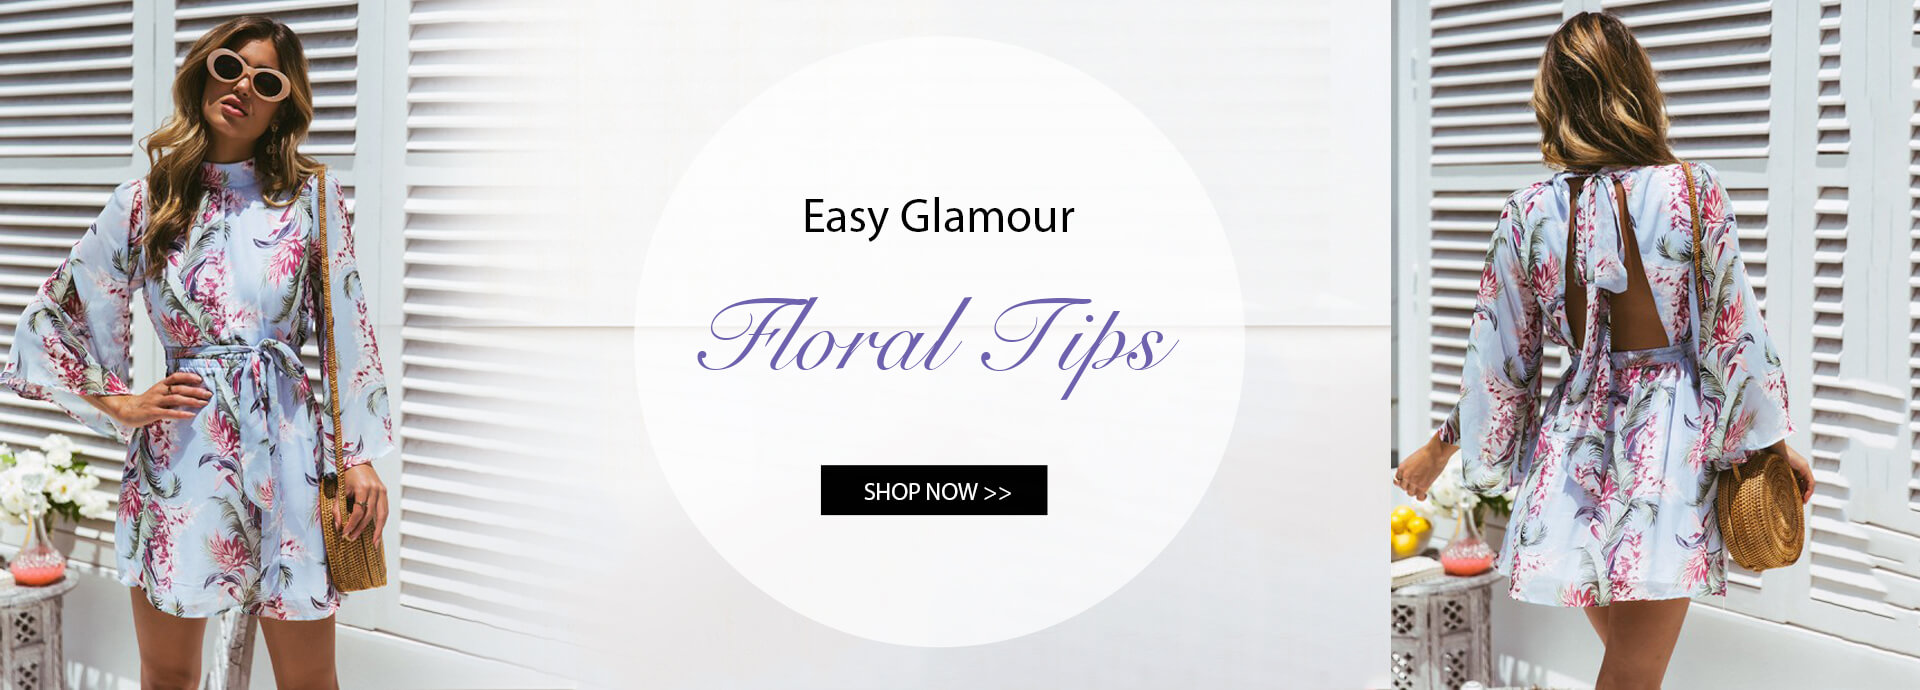 Floral Tips